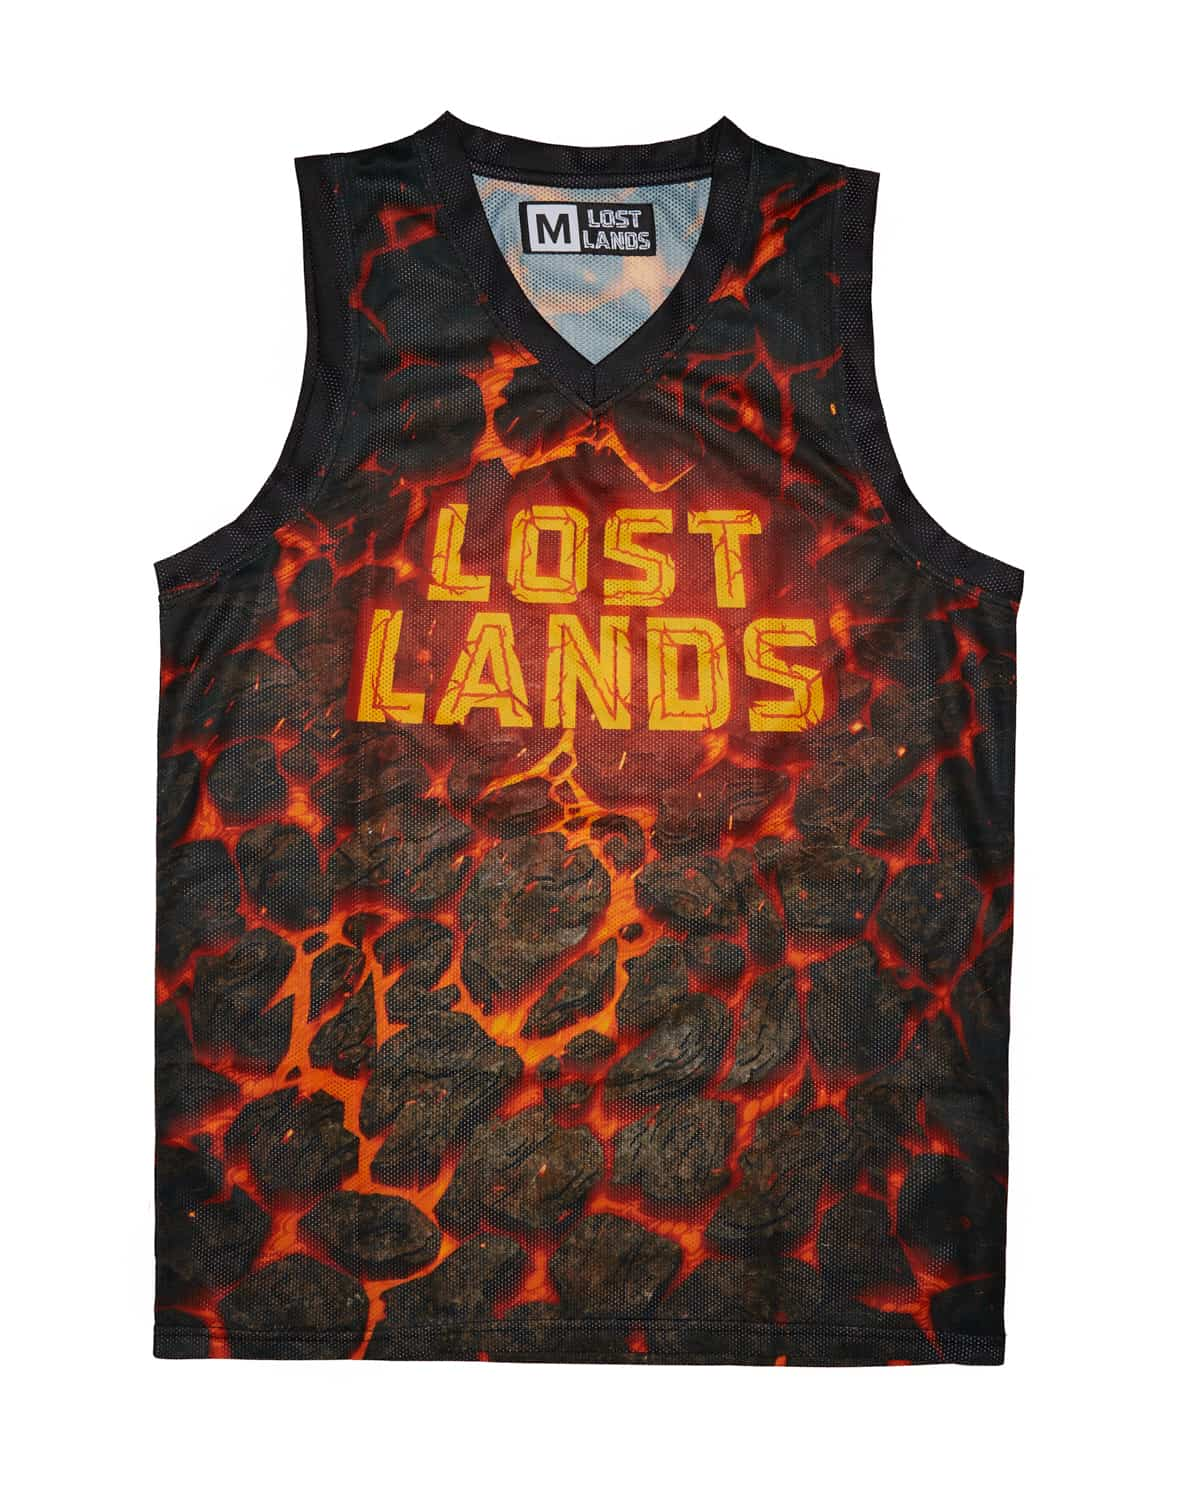 Lost Lands 'Magma' Basketball Jersey - Black/Red